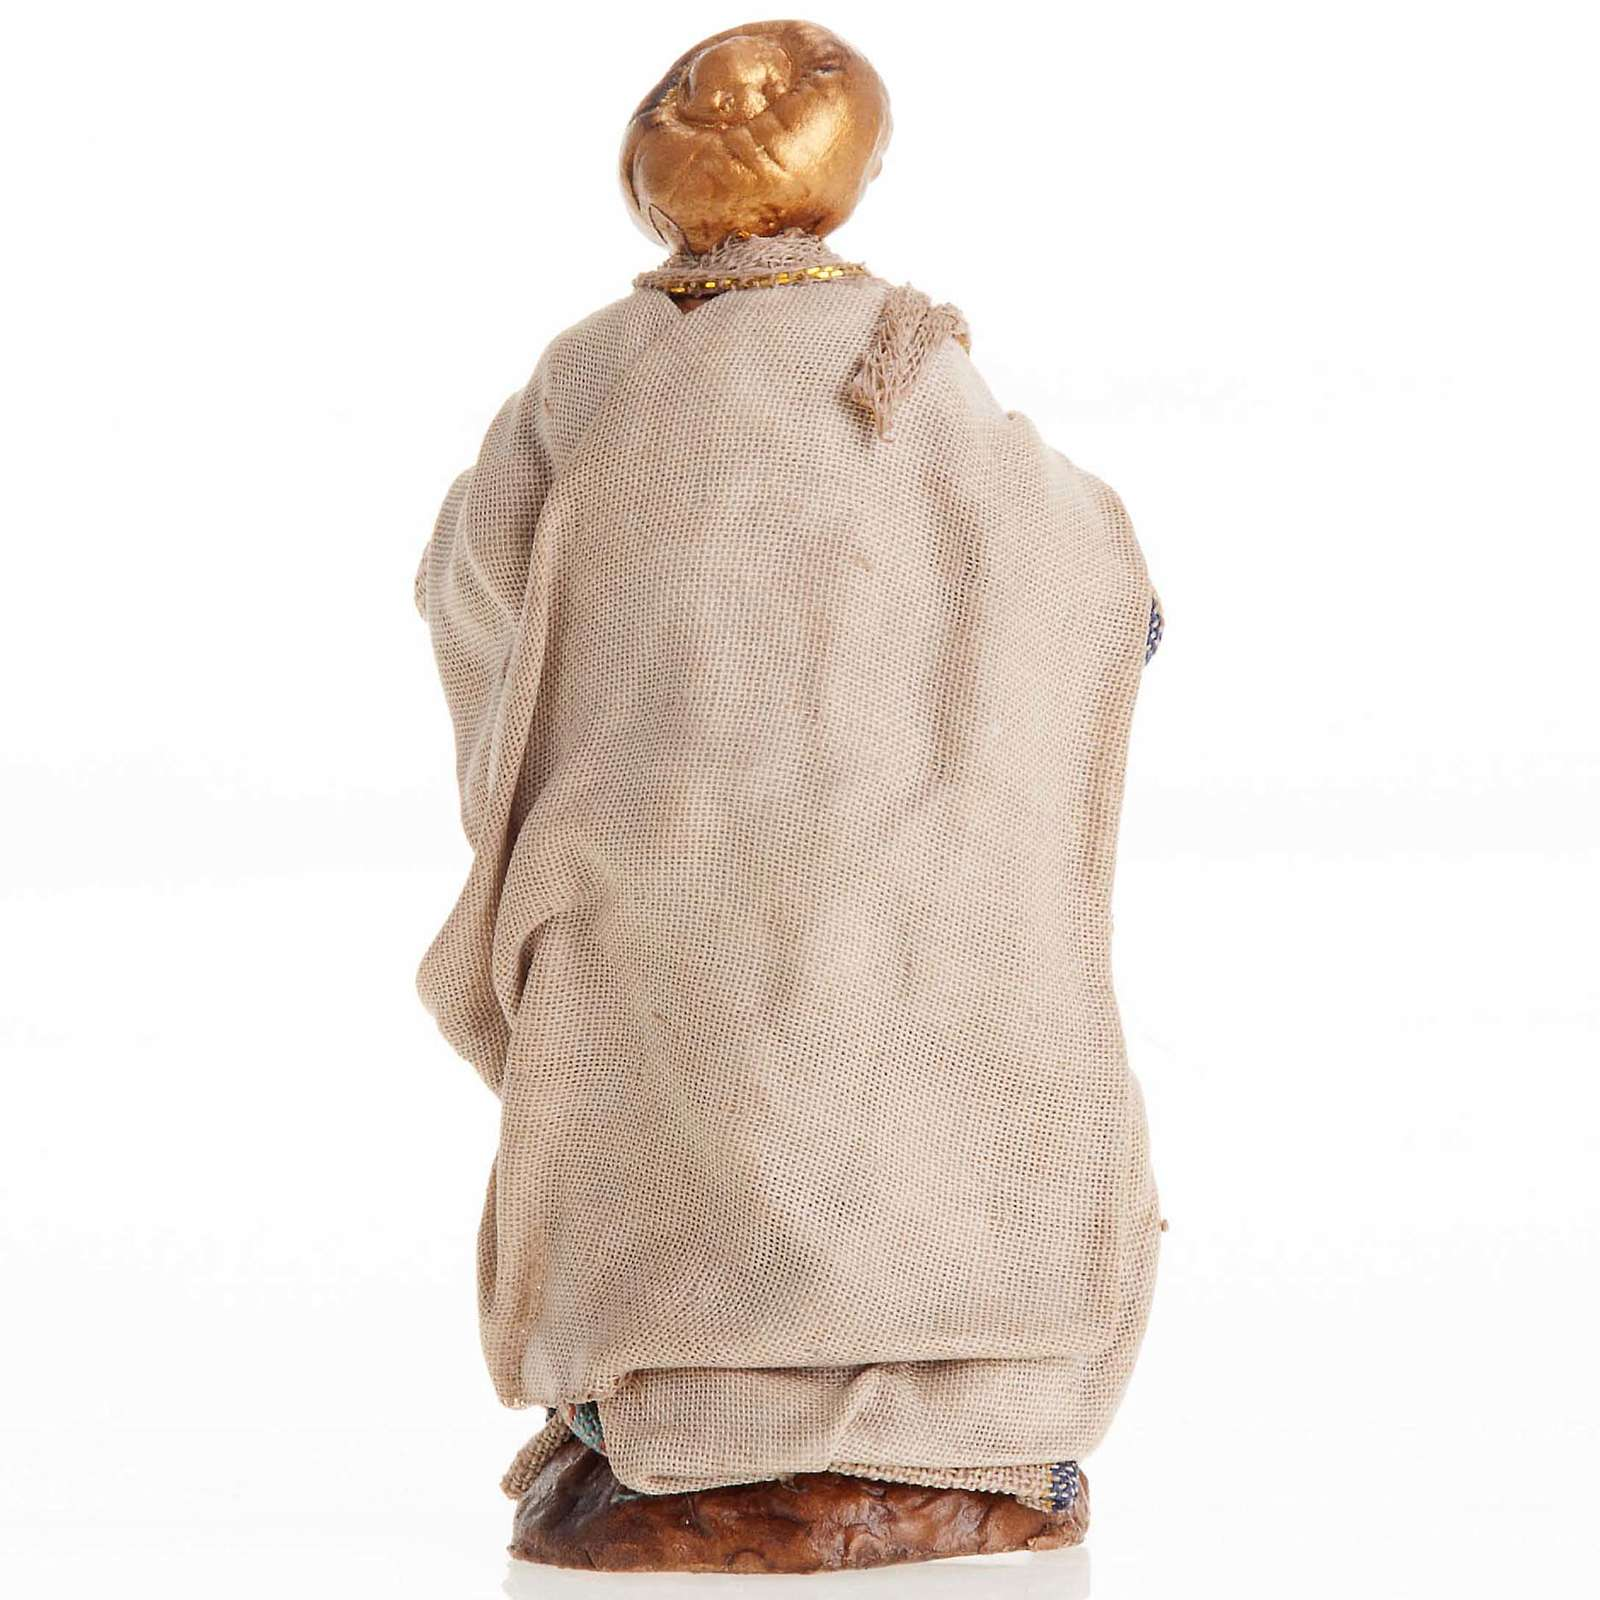 Neapolitan Nativity figurine, Man with turban 8cm 4